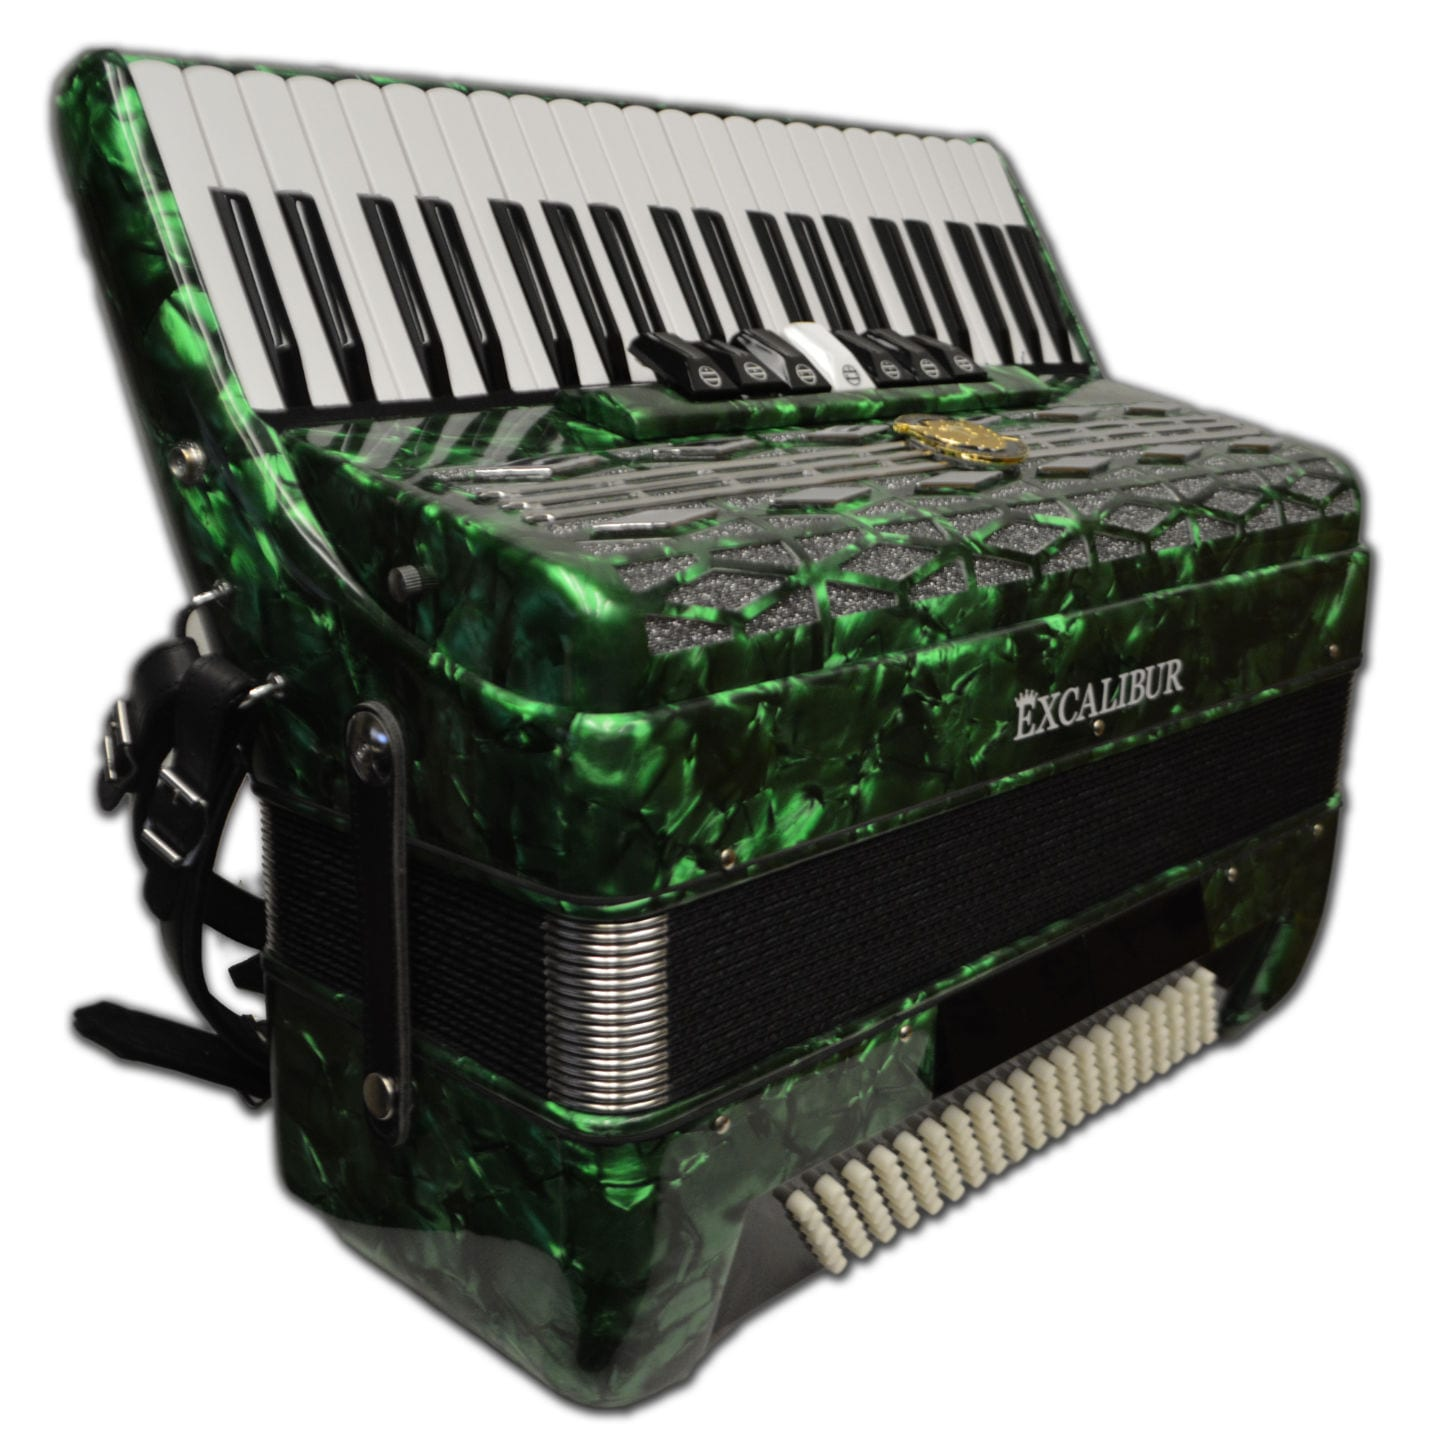 Excalibur Super Classic 120 Bass Accordion - Green